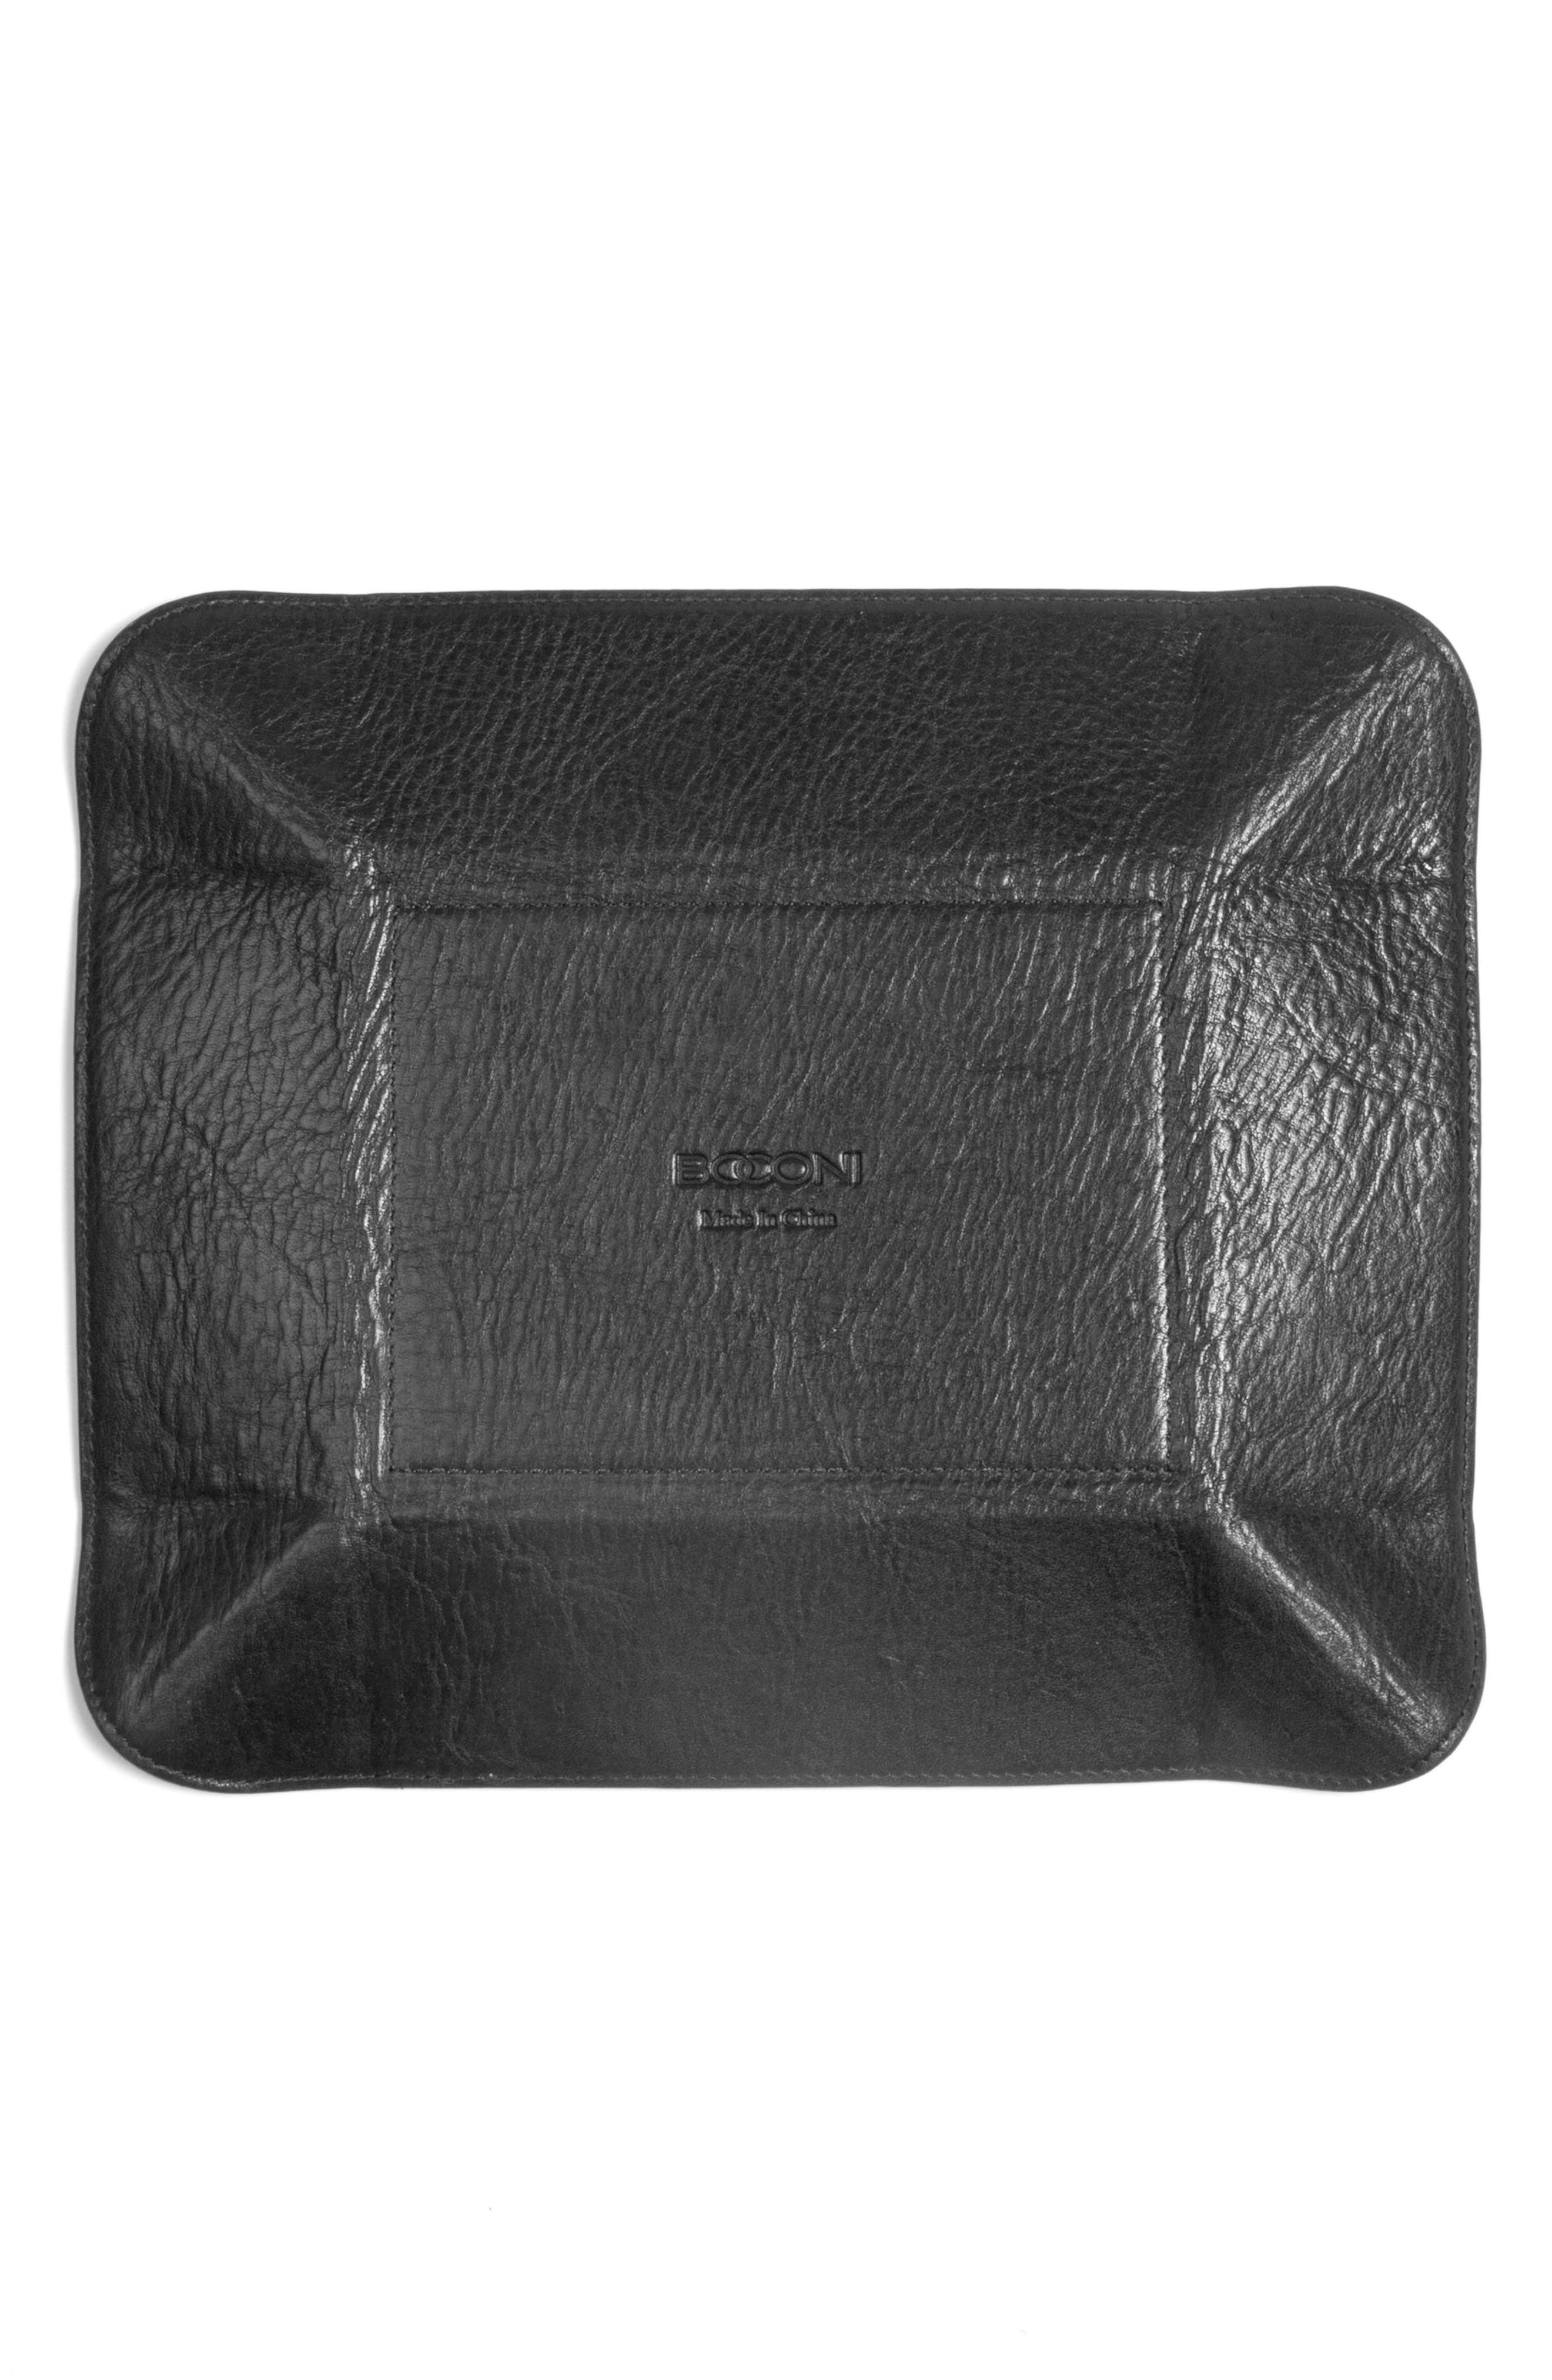 Becker Catchall Tray,                             Alternate thumbnail 7, color,